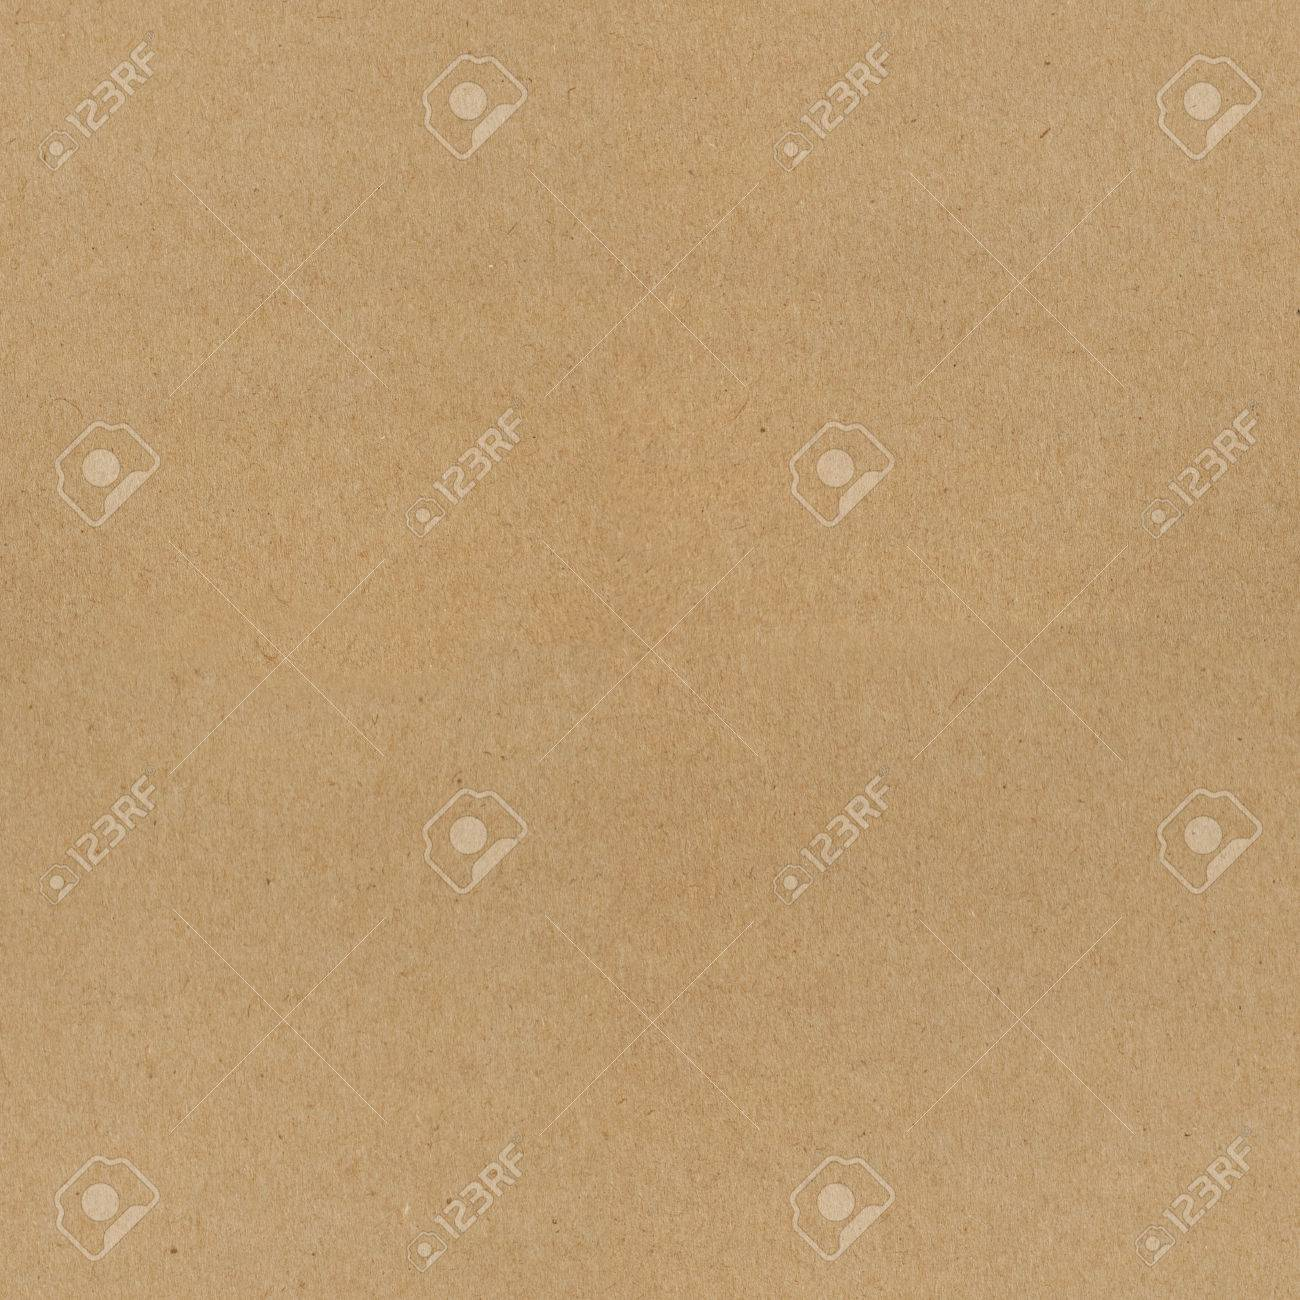 tileable wallpaper texture. Unique Texture Repeating Paper Background Texture This Picture Is A Tileable Wallpaper  That Repeats Left Right On Tileable Wallpaper Texture